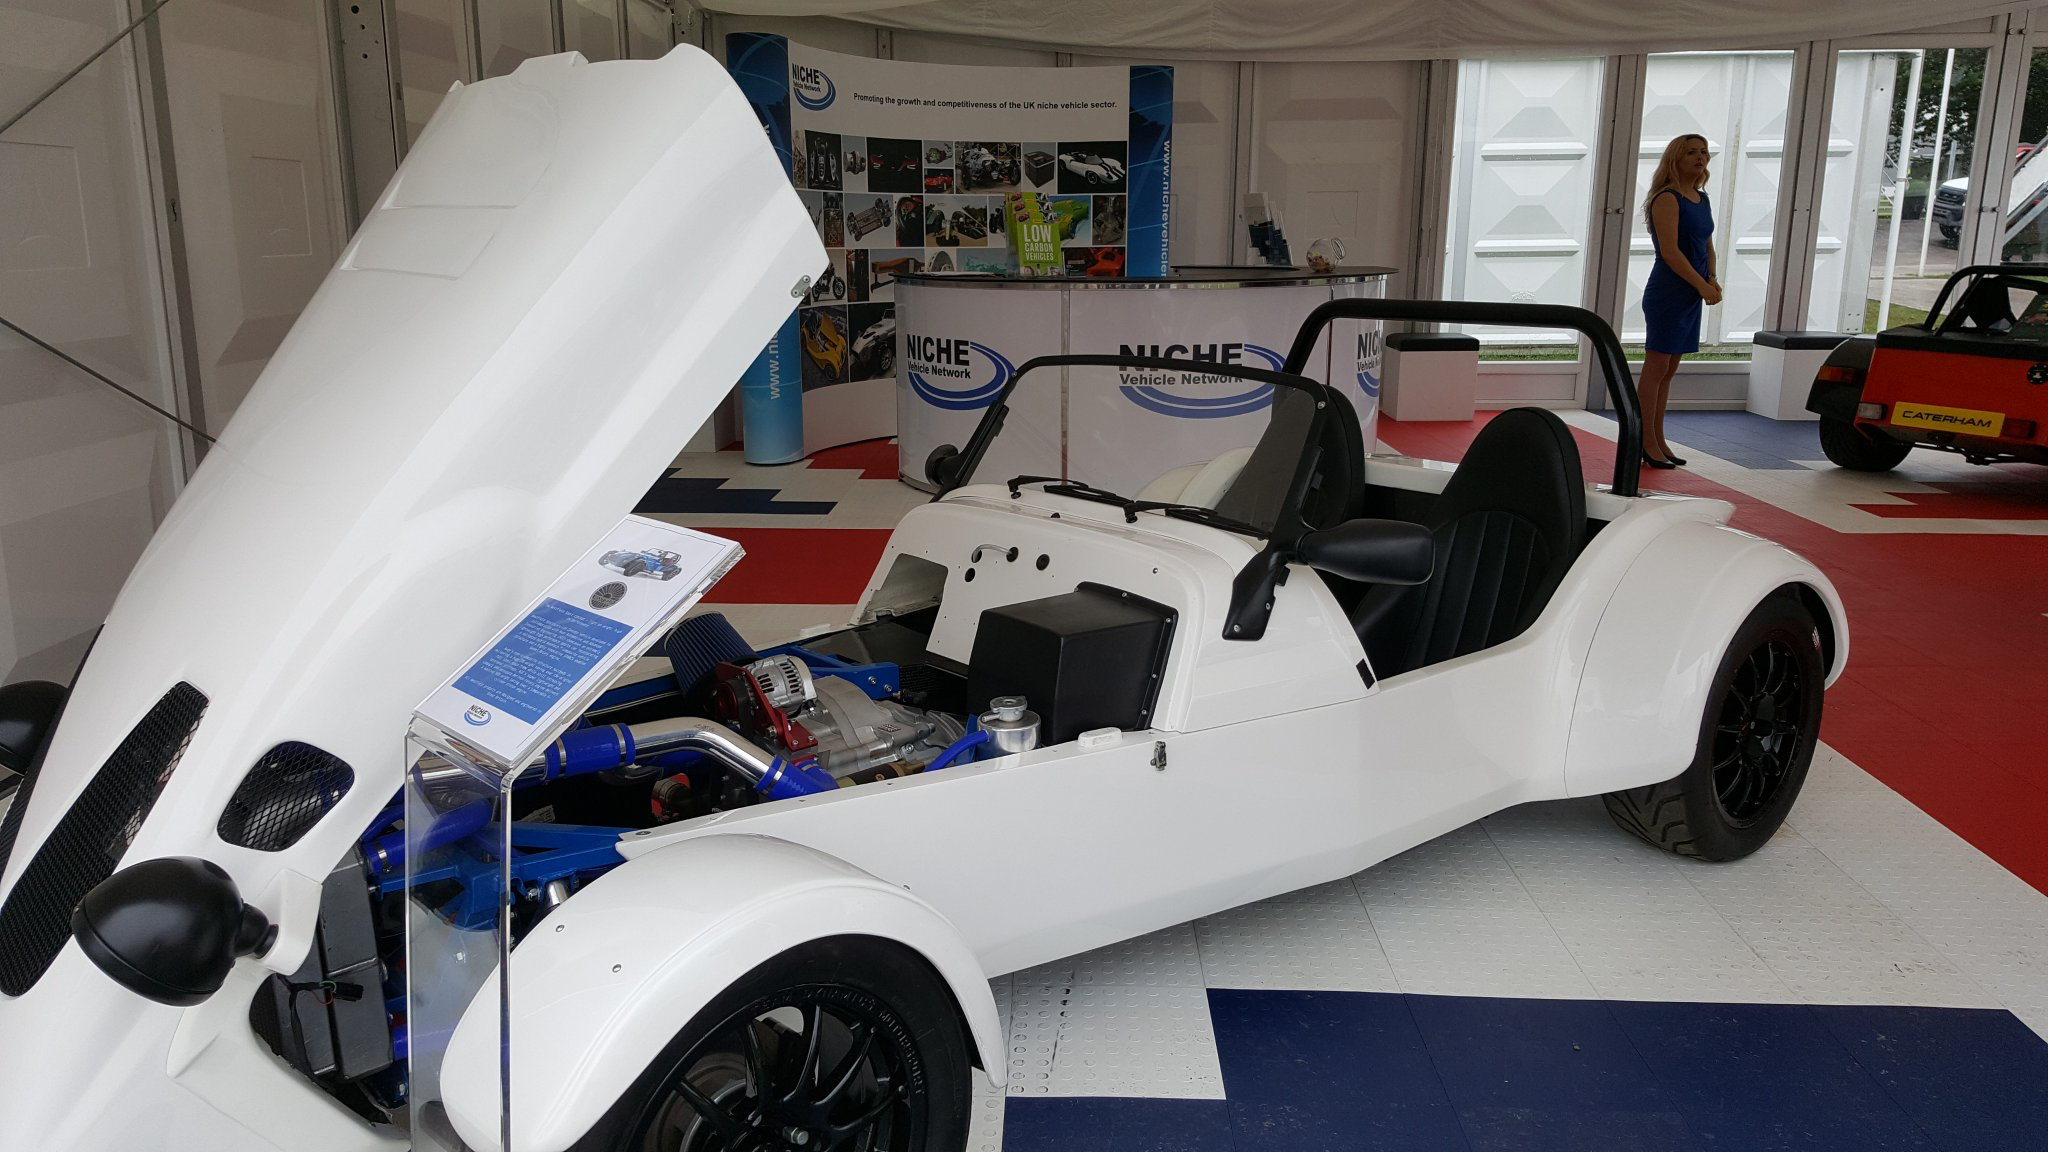 Rotary Engine Sports Car Clocks Up its First 2,700 miles